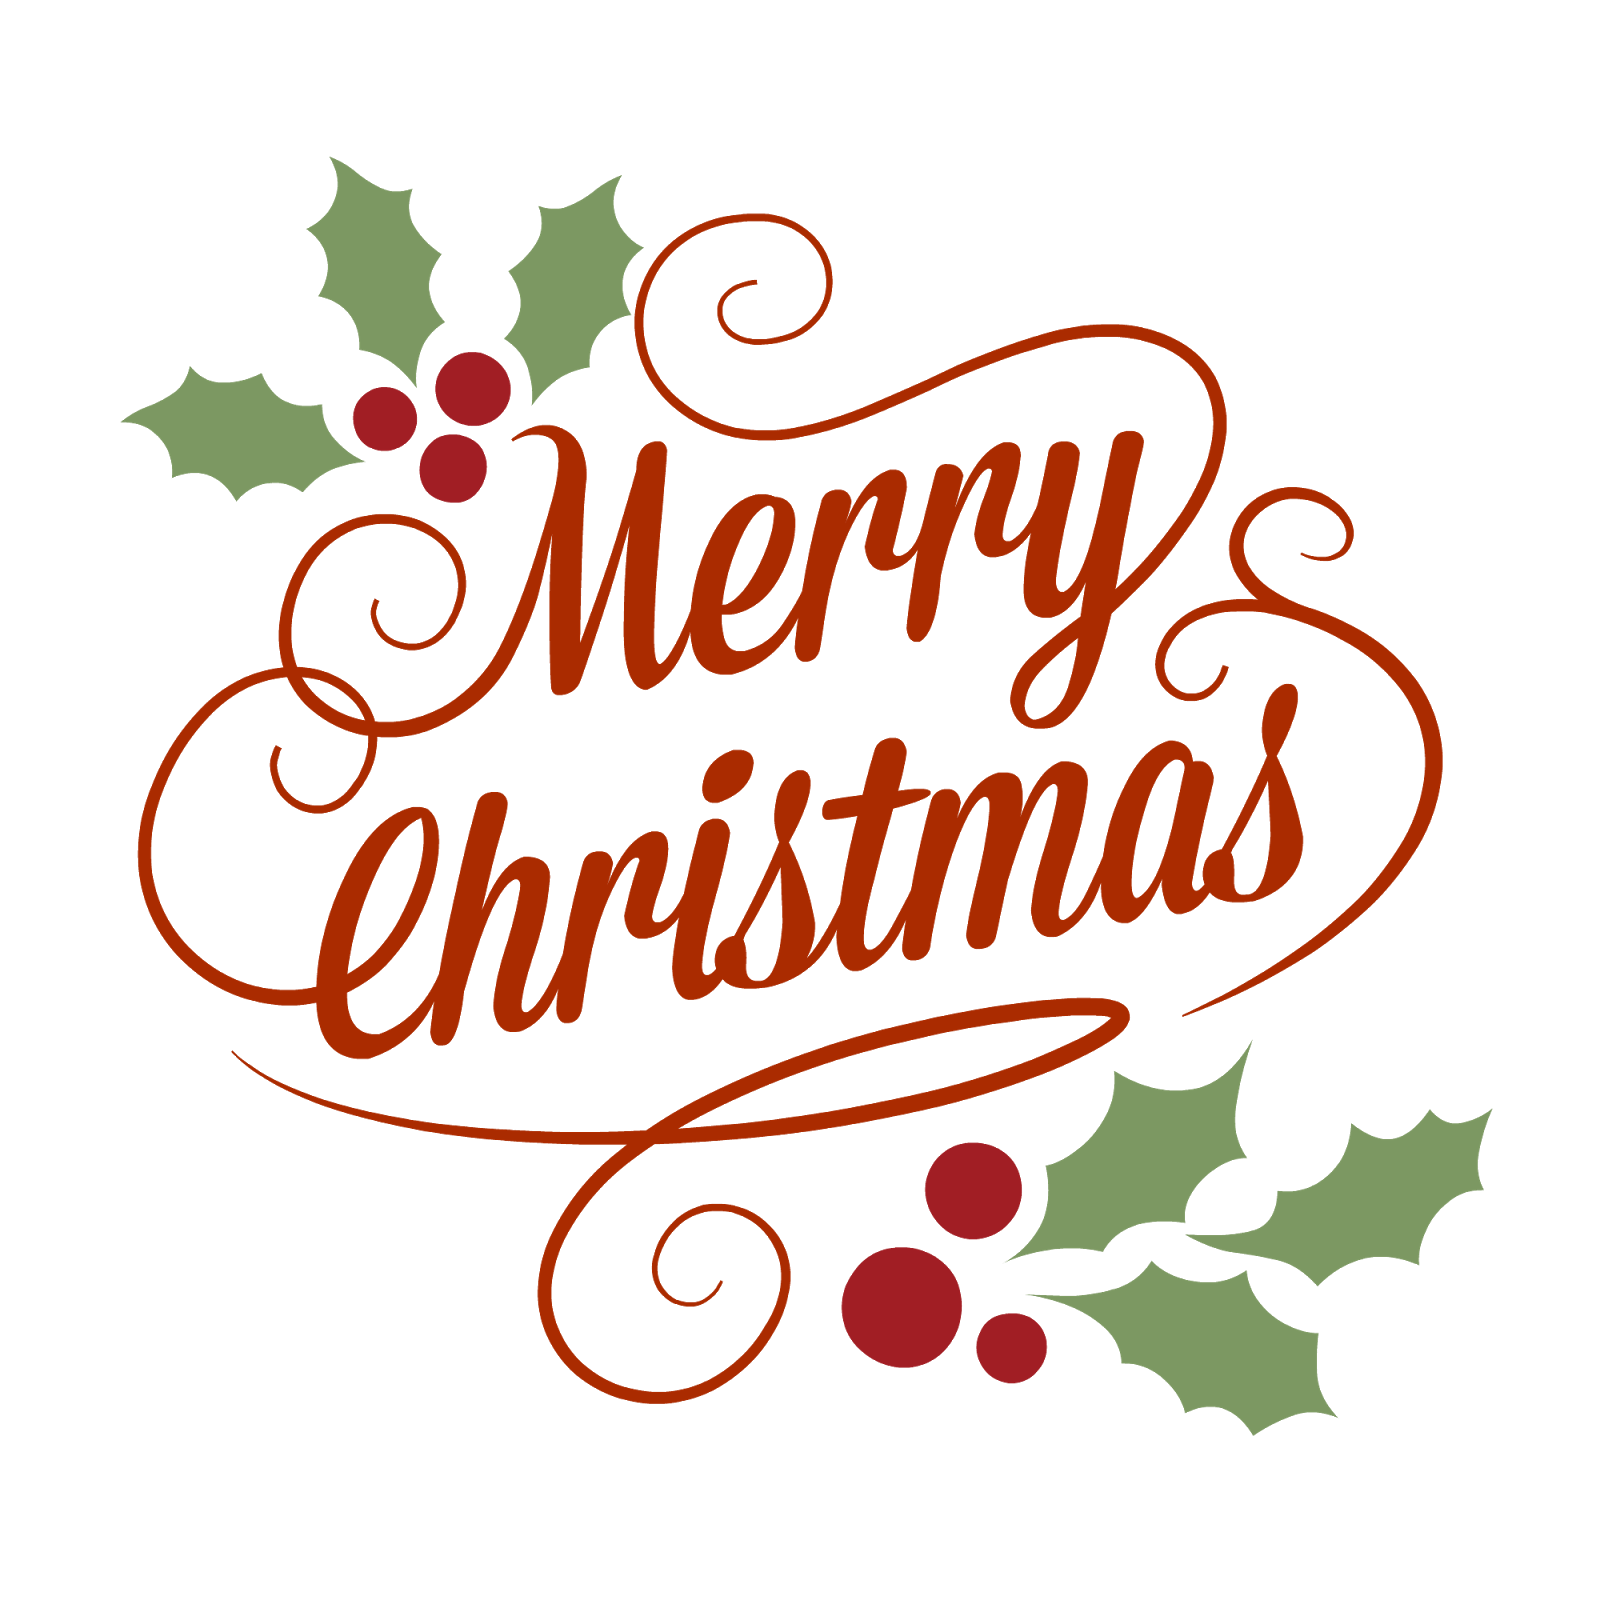 Christmas party clipart clipart Merry Christmas Classical Vintage Sign transparent PNG - StickPNG clipart